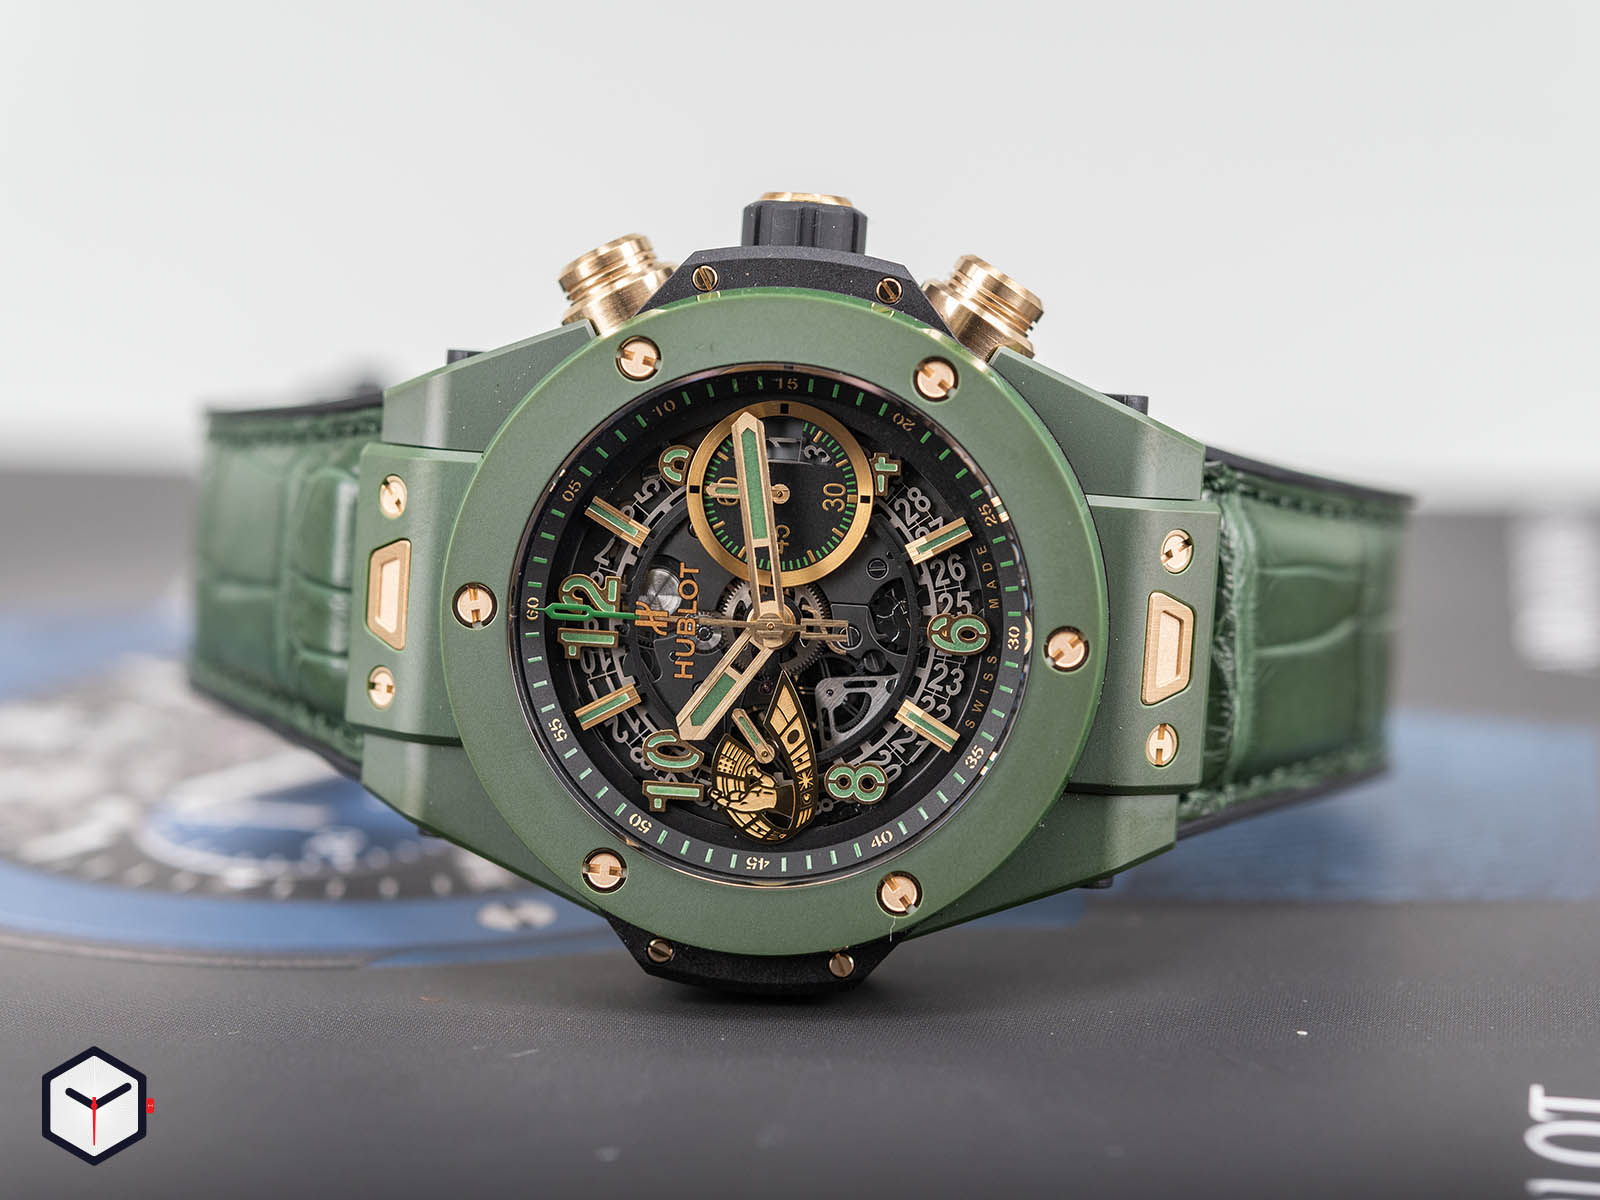 411-gx-1189-lr-wbc19-hublot-big-bang-unico-wbc-1.jpg